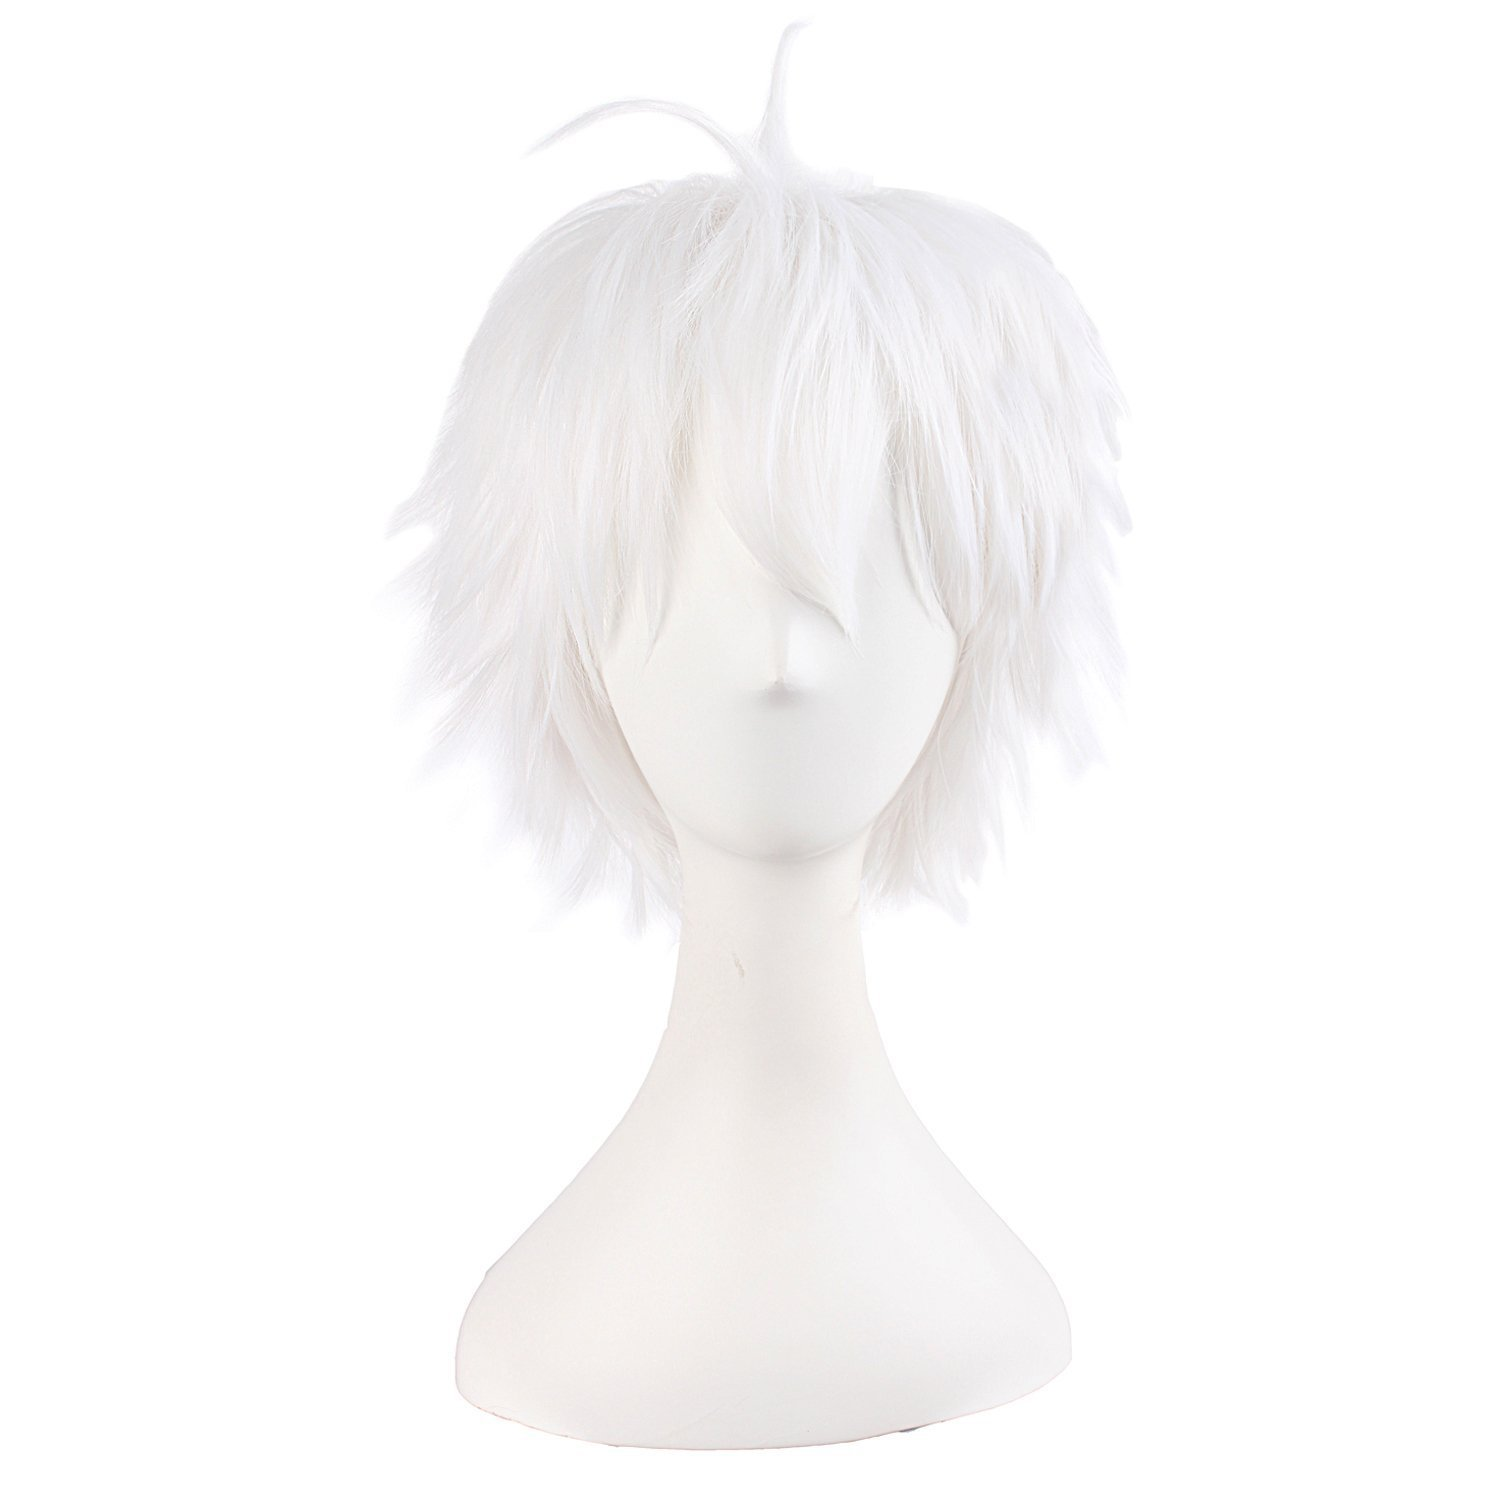 MapofBeauty 14/35cm White Men's with Short Hair Tied Ponytail Cosplay Wigs